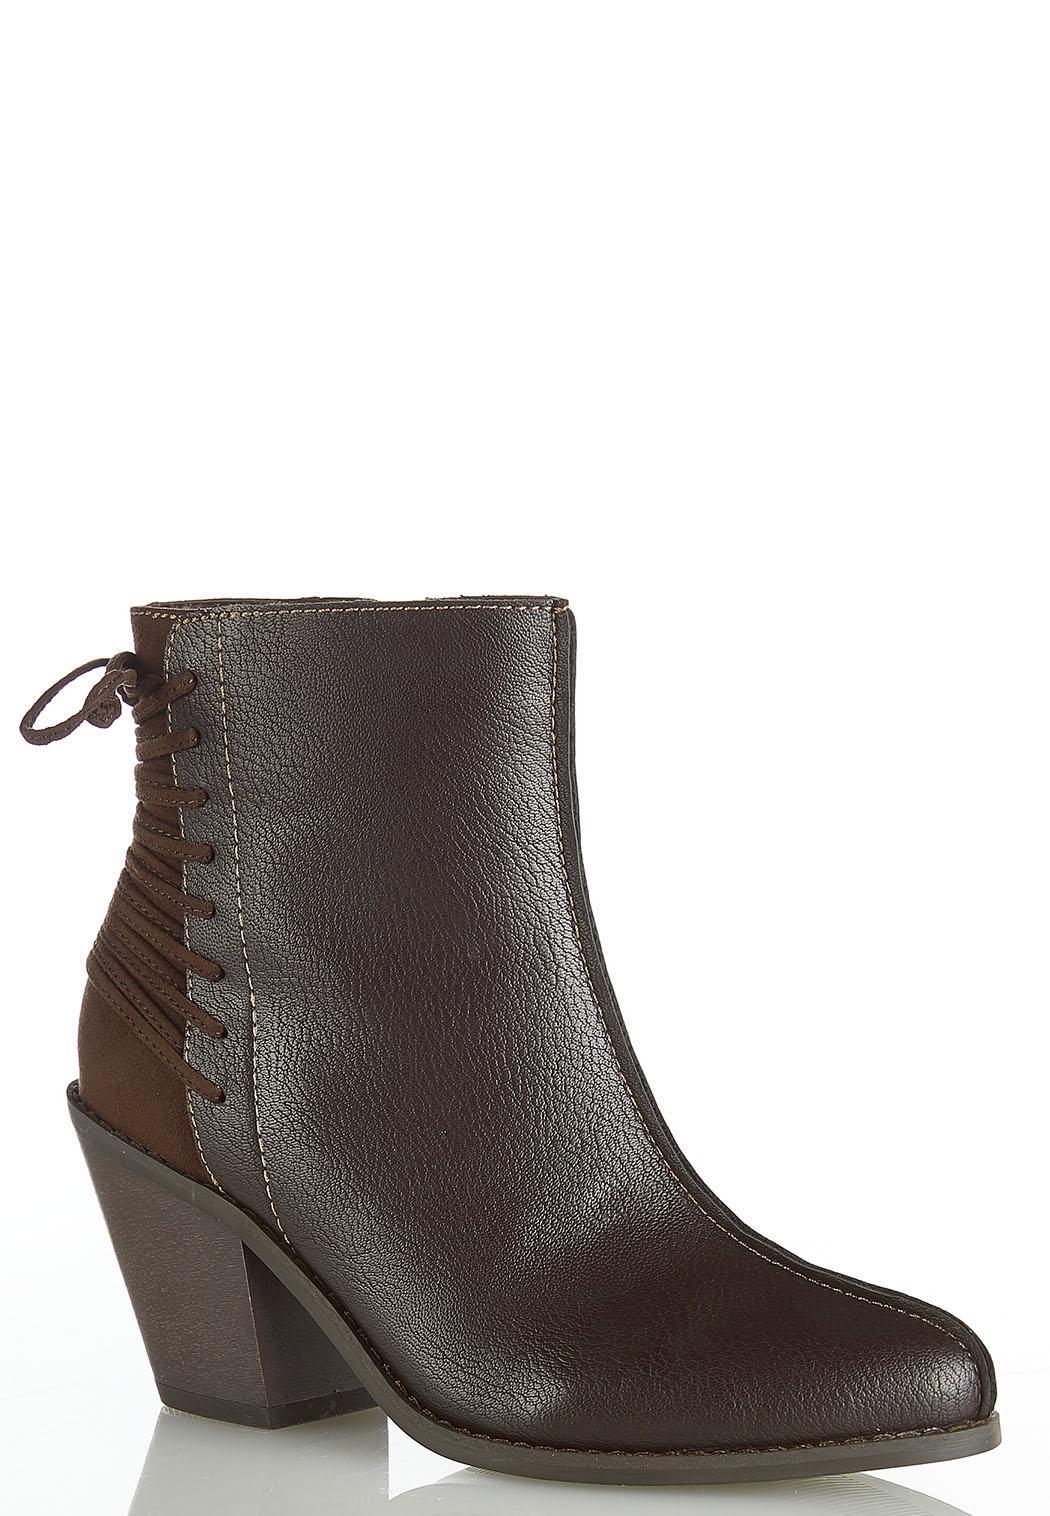 Back Lace Up Boots